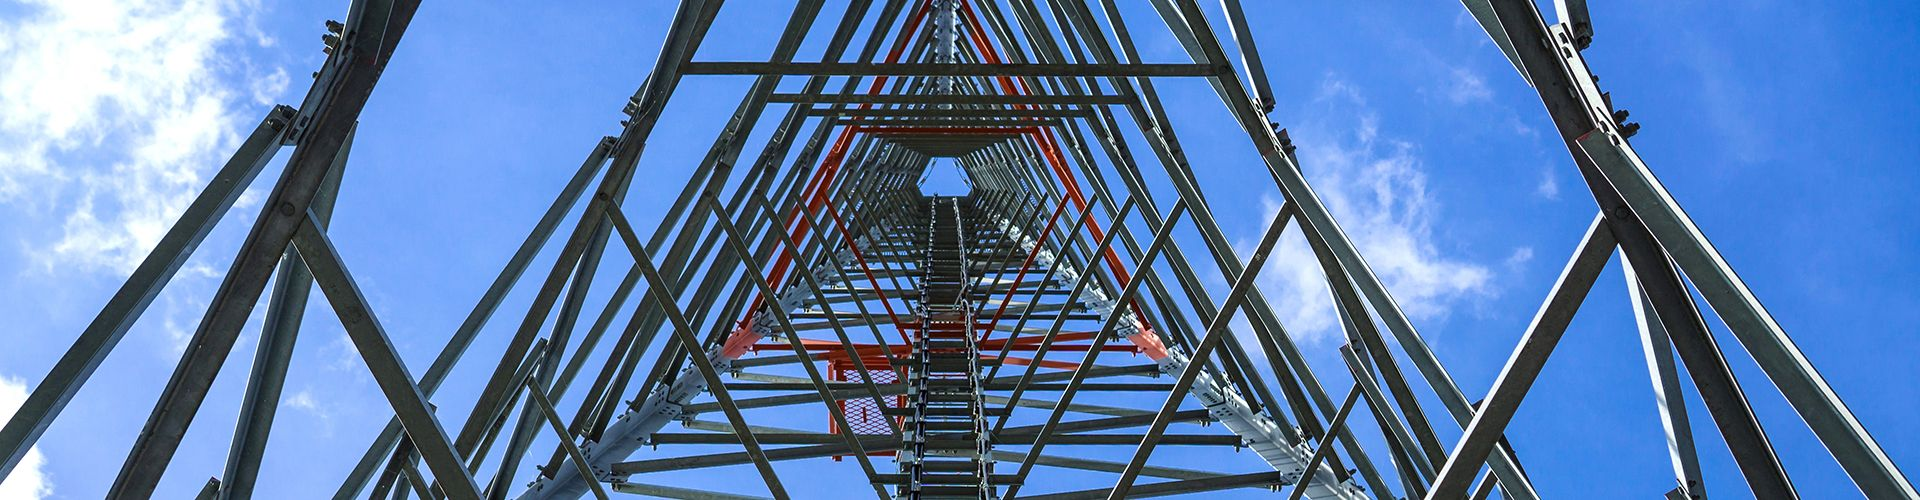 Cell tower from Automate customer success story